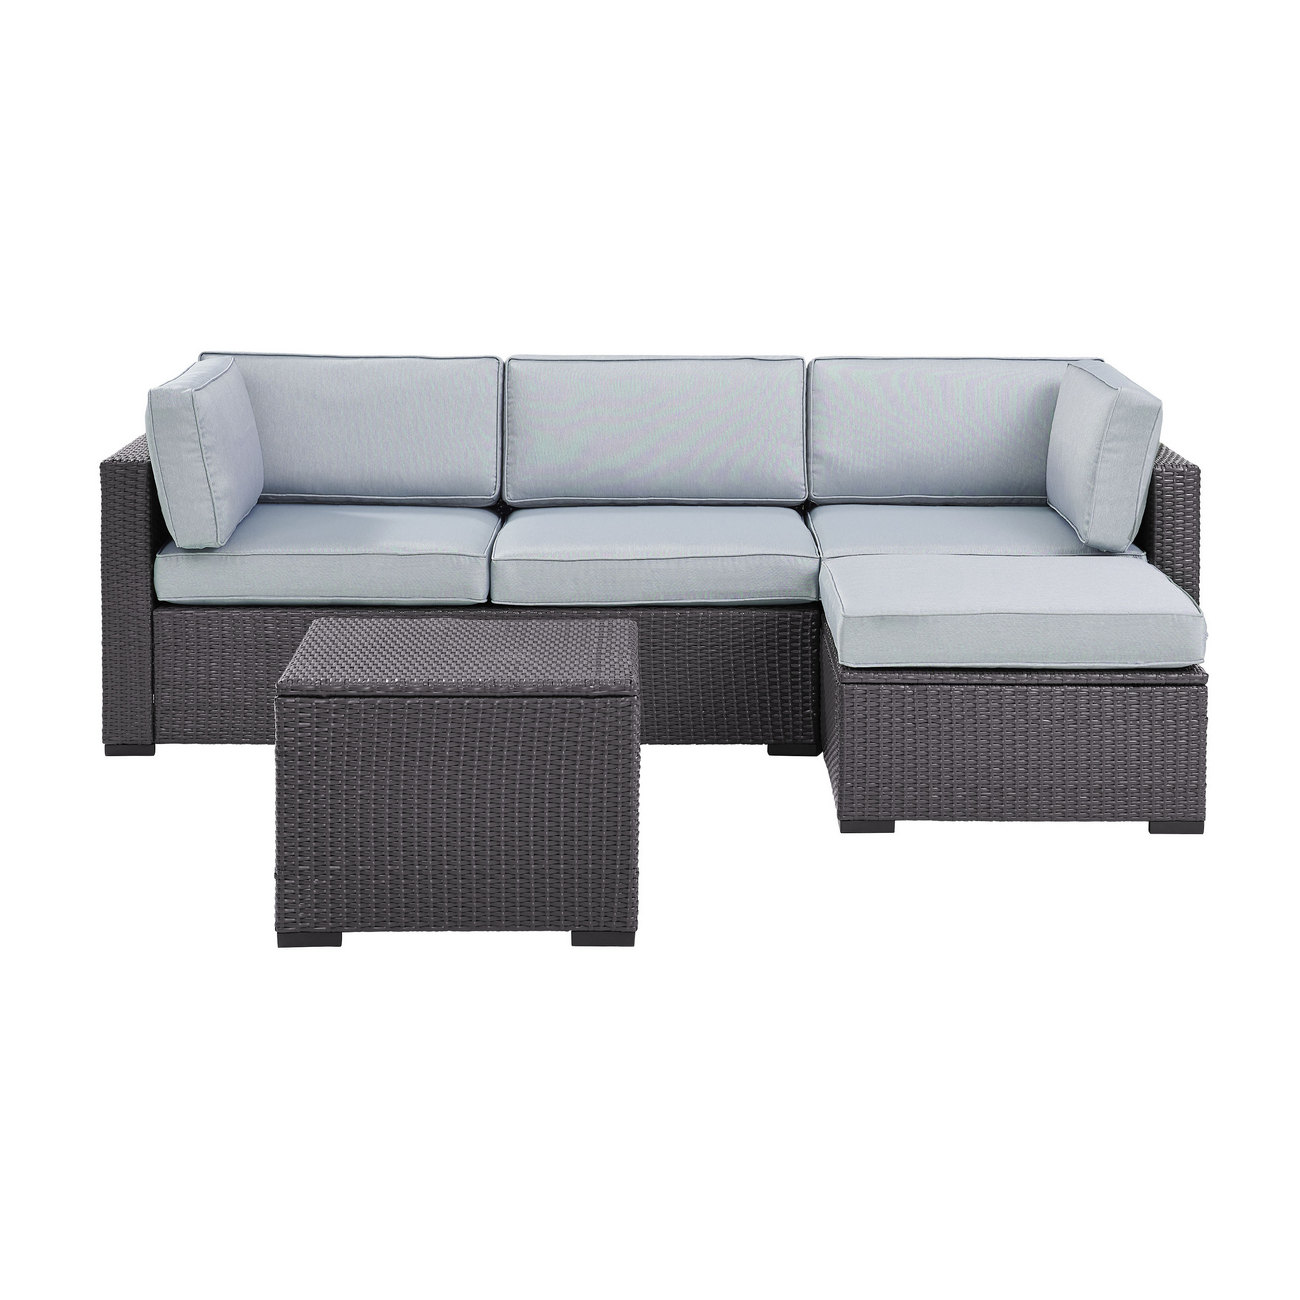 Biscayne 4 Person Outdoor Wicker Seating Set in Mist - One Loveseat, One Corner Chair, Ottoman, Coffee Table - Crosley KO70105BR-MI